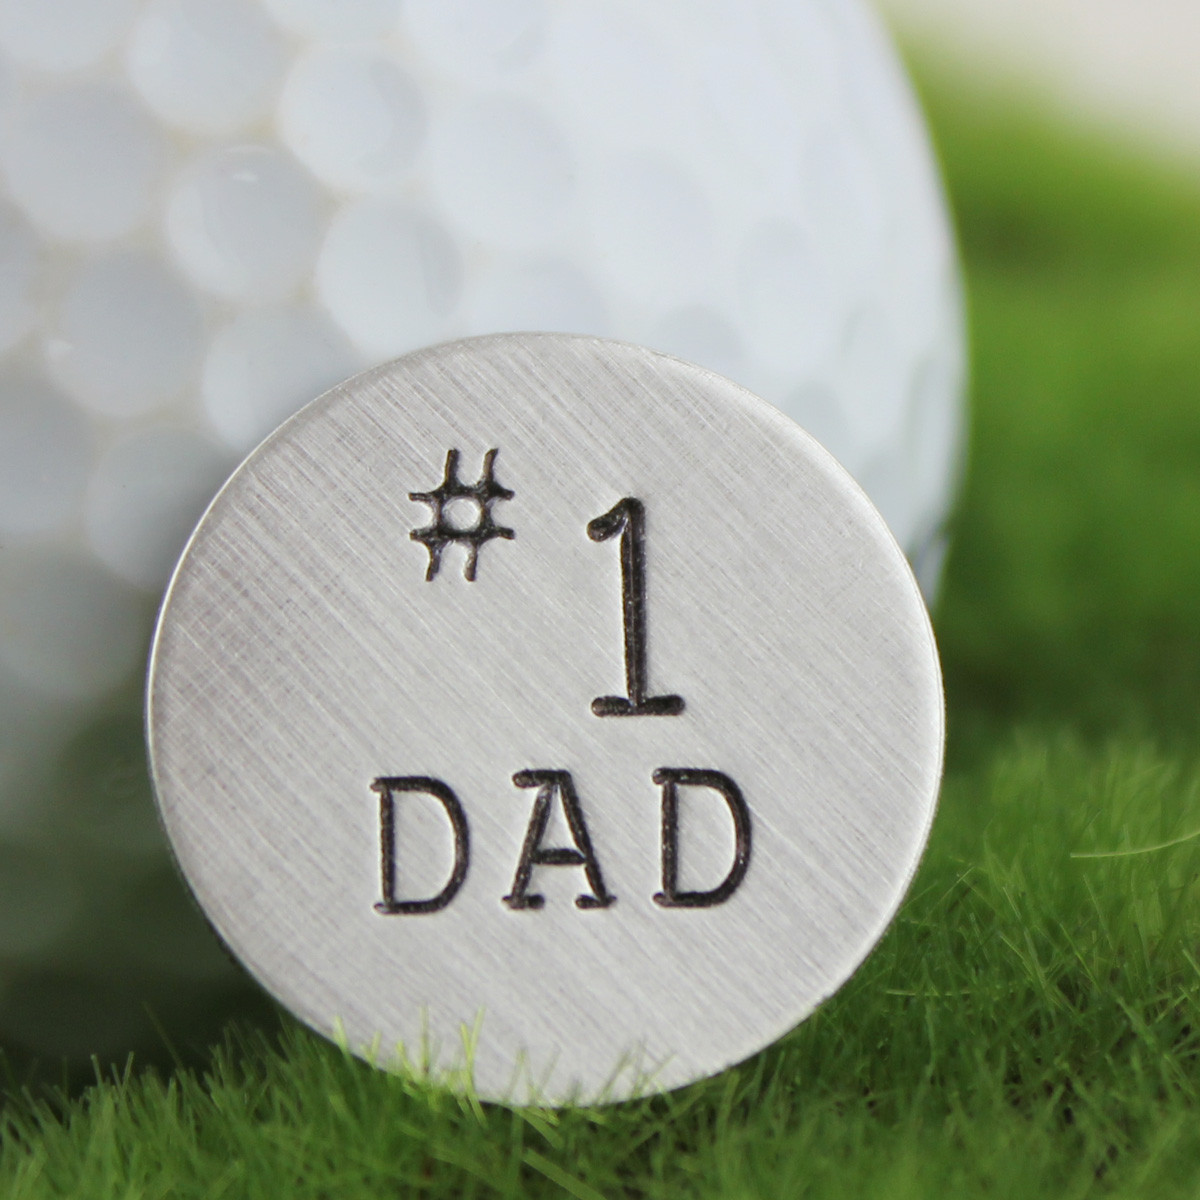 No. 1 Dad Golf Ball Marker